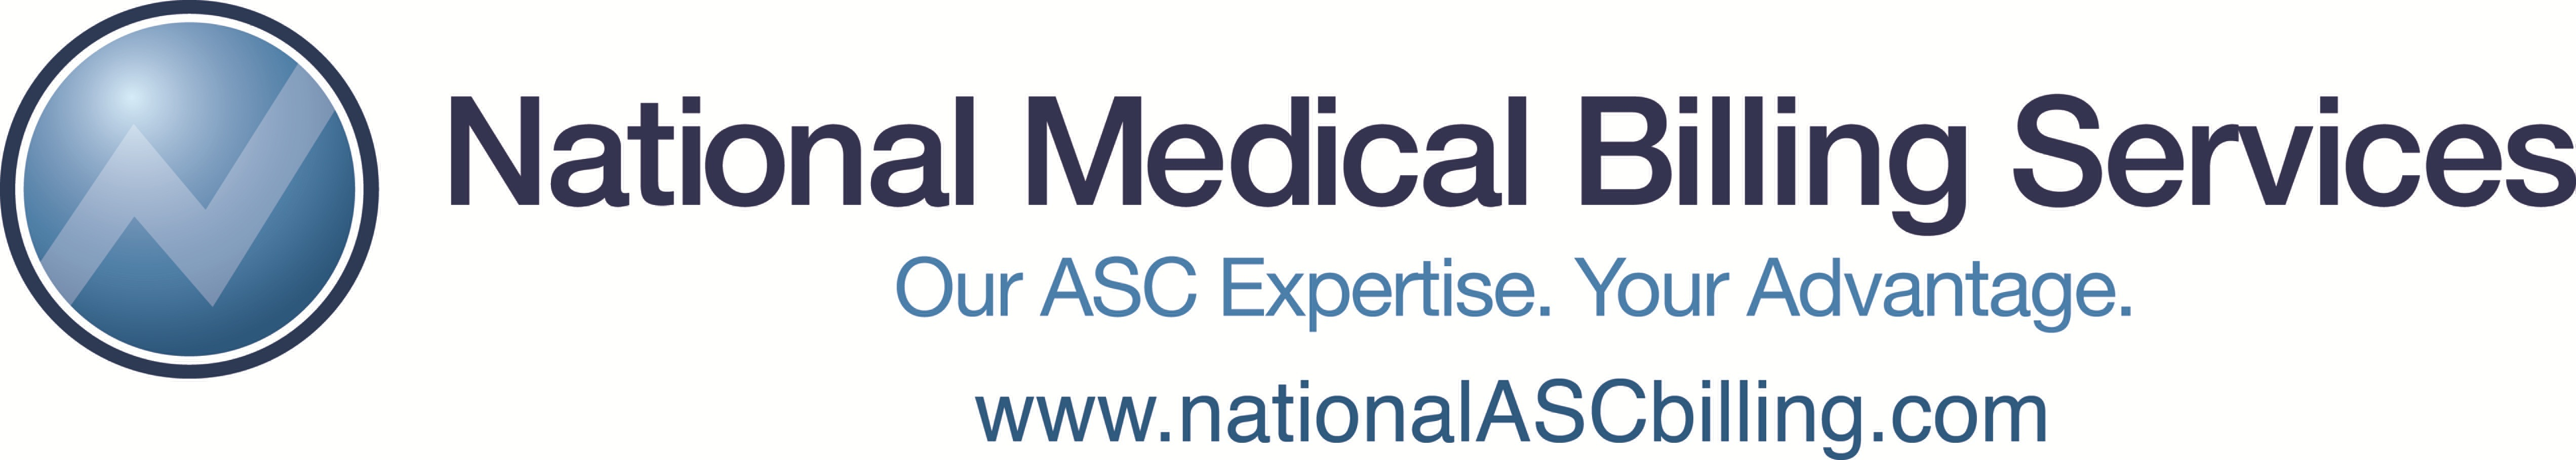 National Medical Billing Services logo